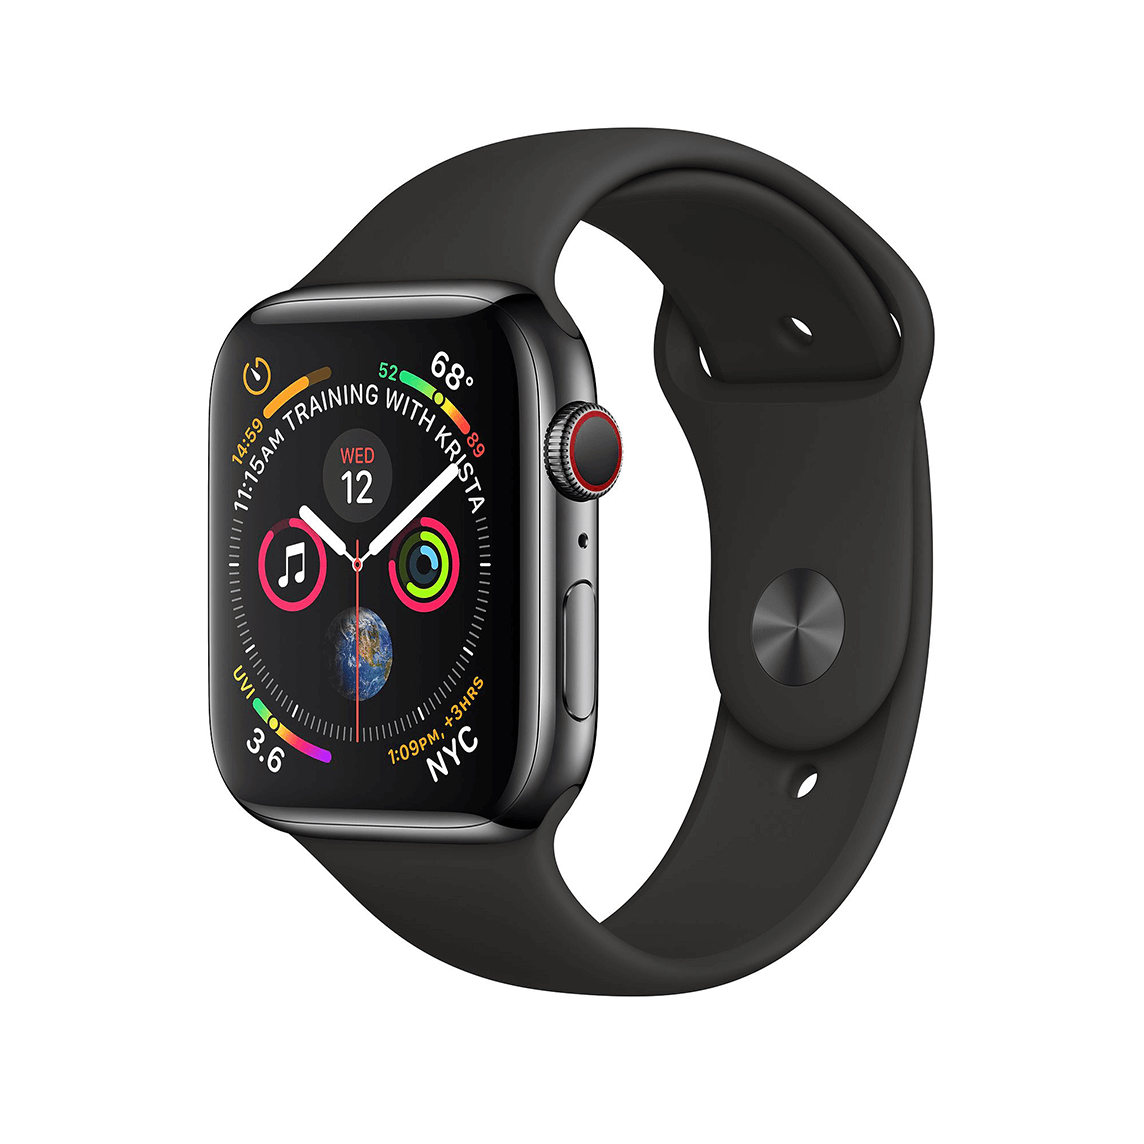 Apple Watch Series 4 FTX22B/A